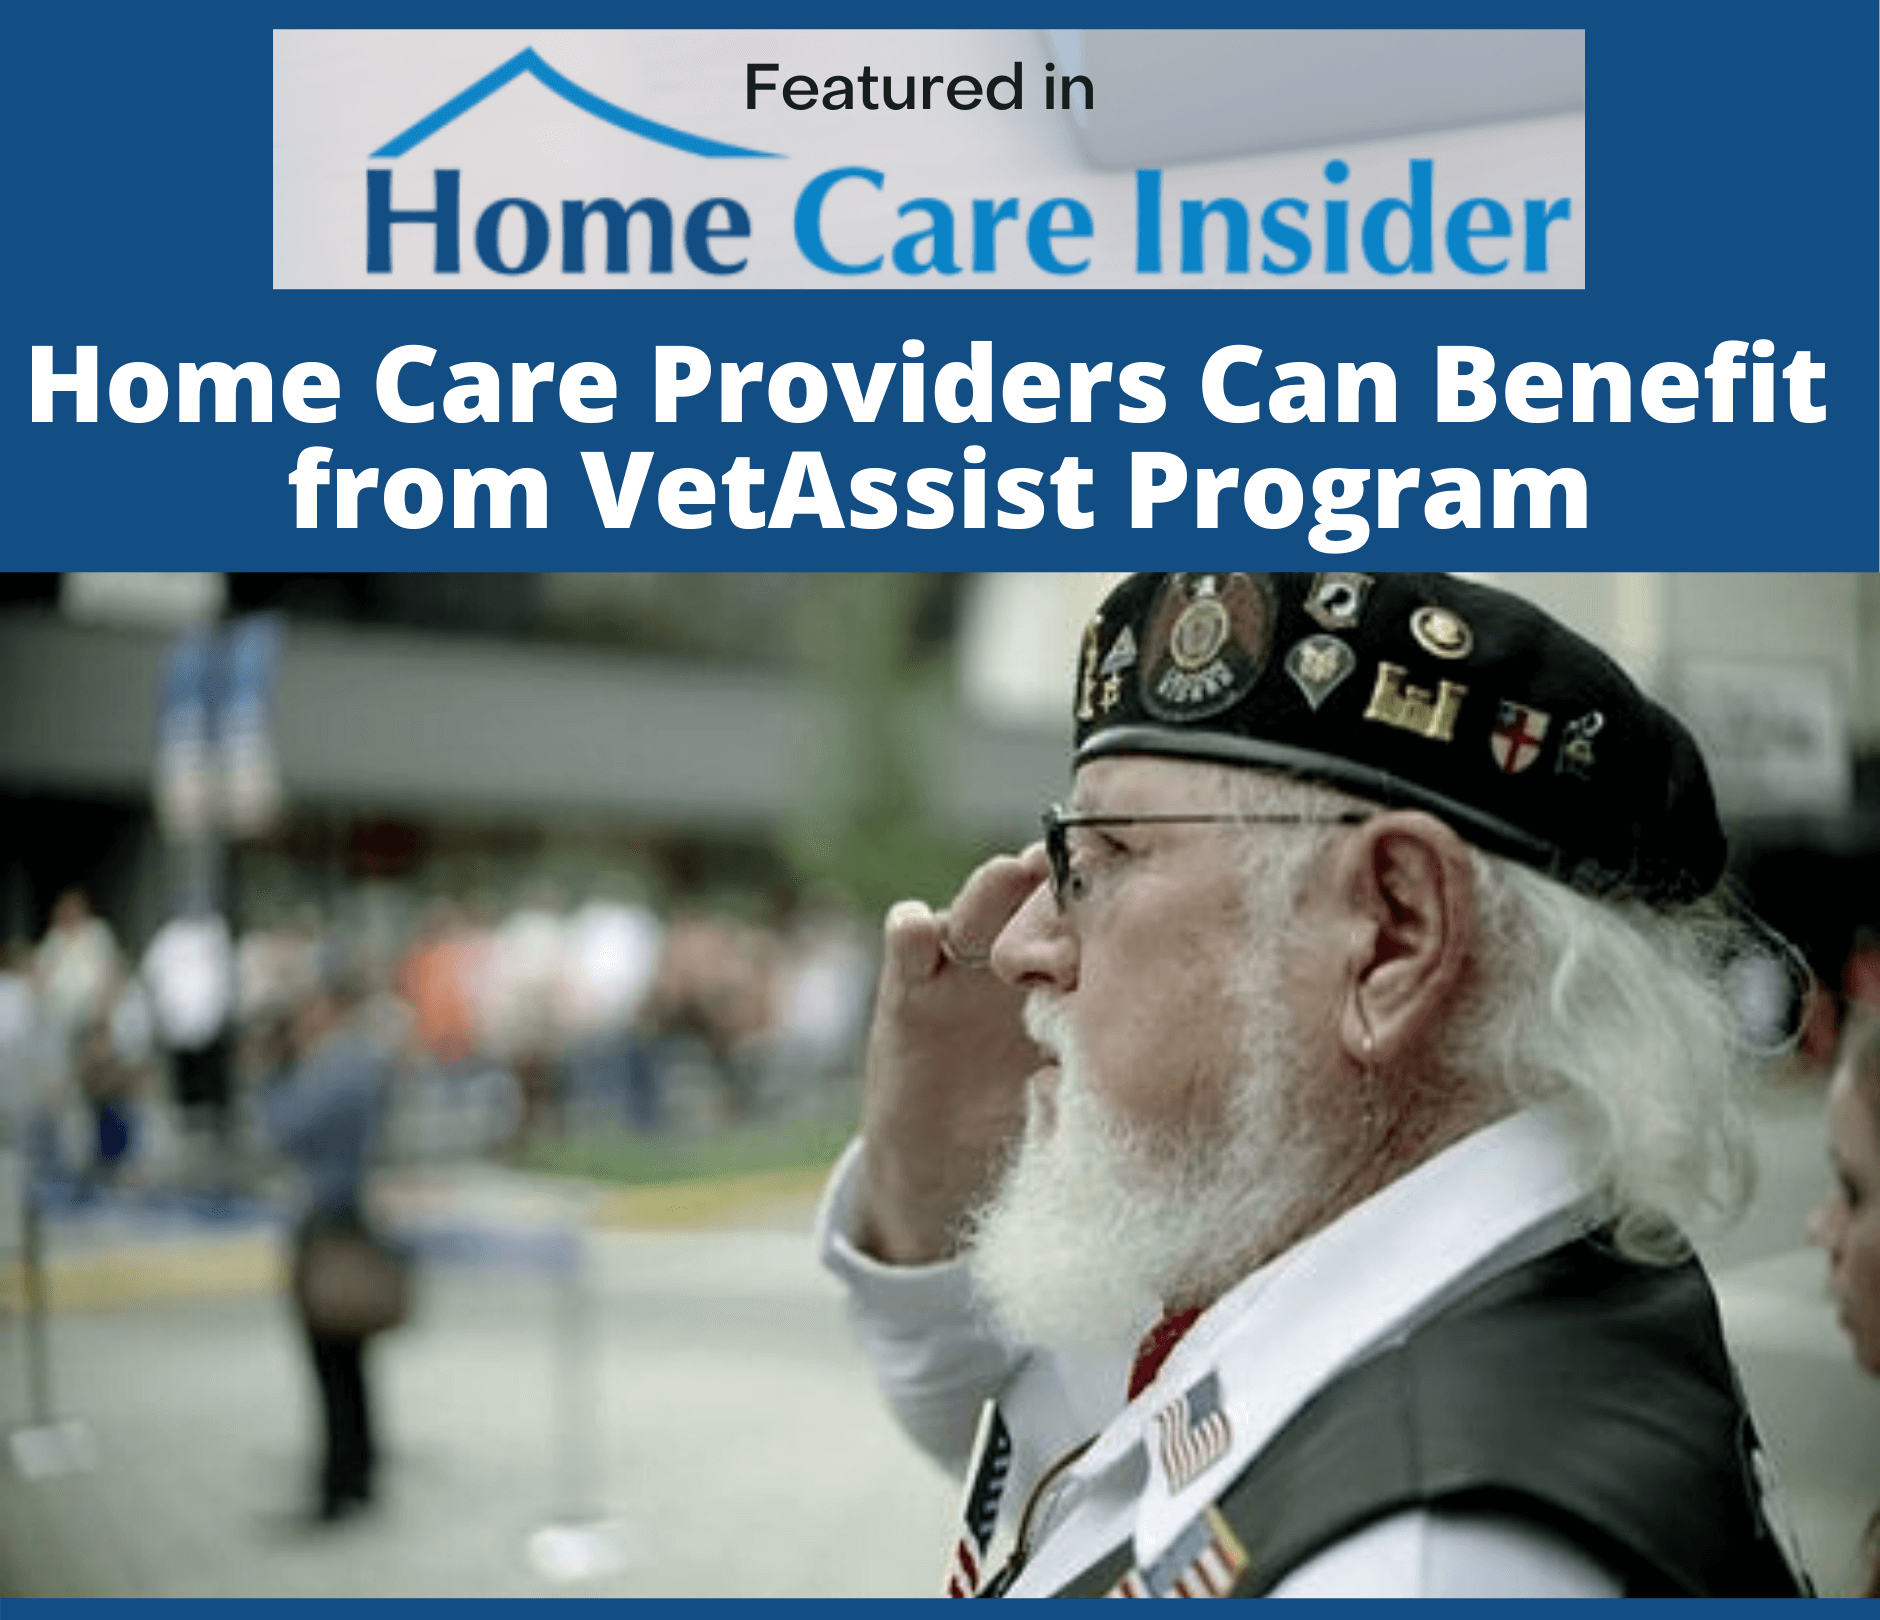 HCAOA: Home Care Providers Can Benefit from VetAssist Program